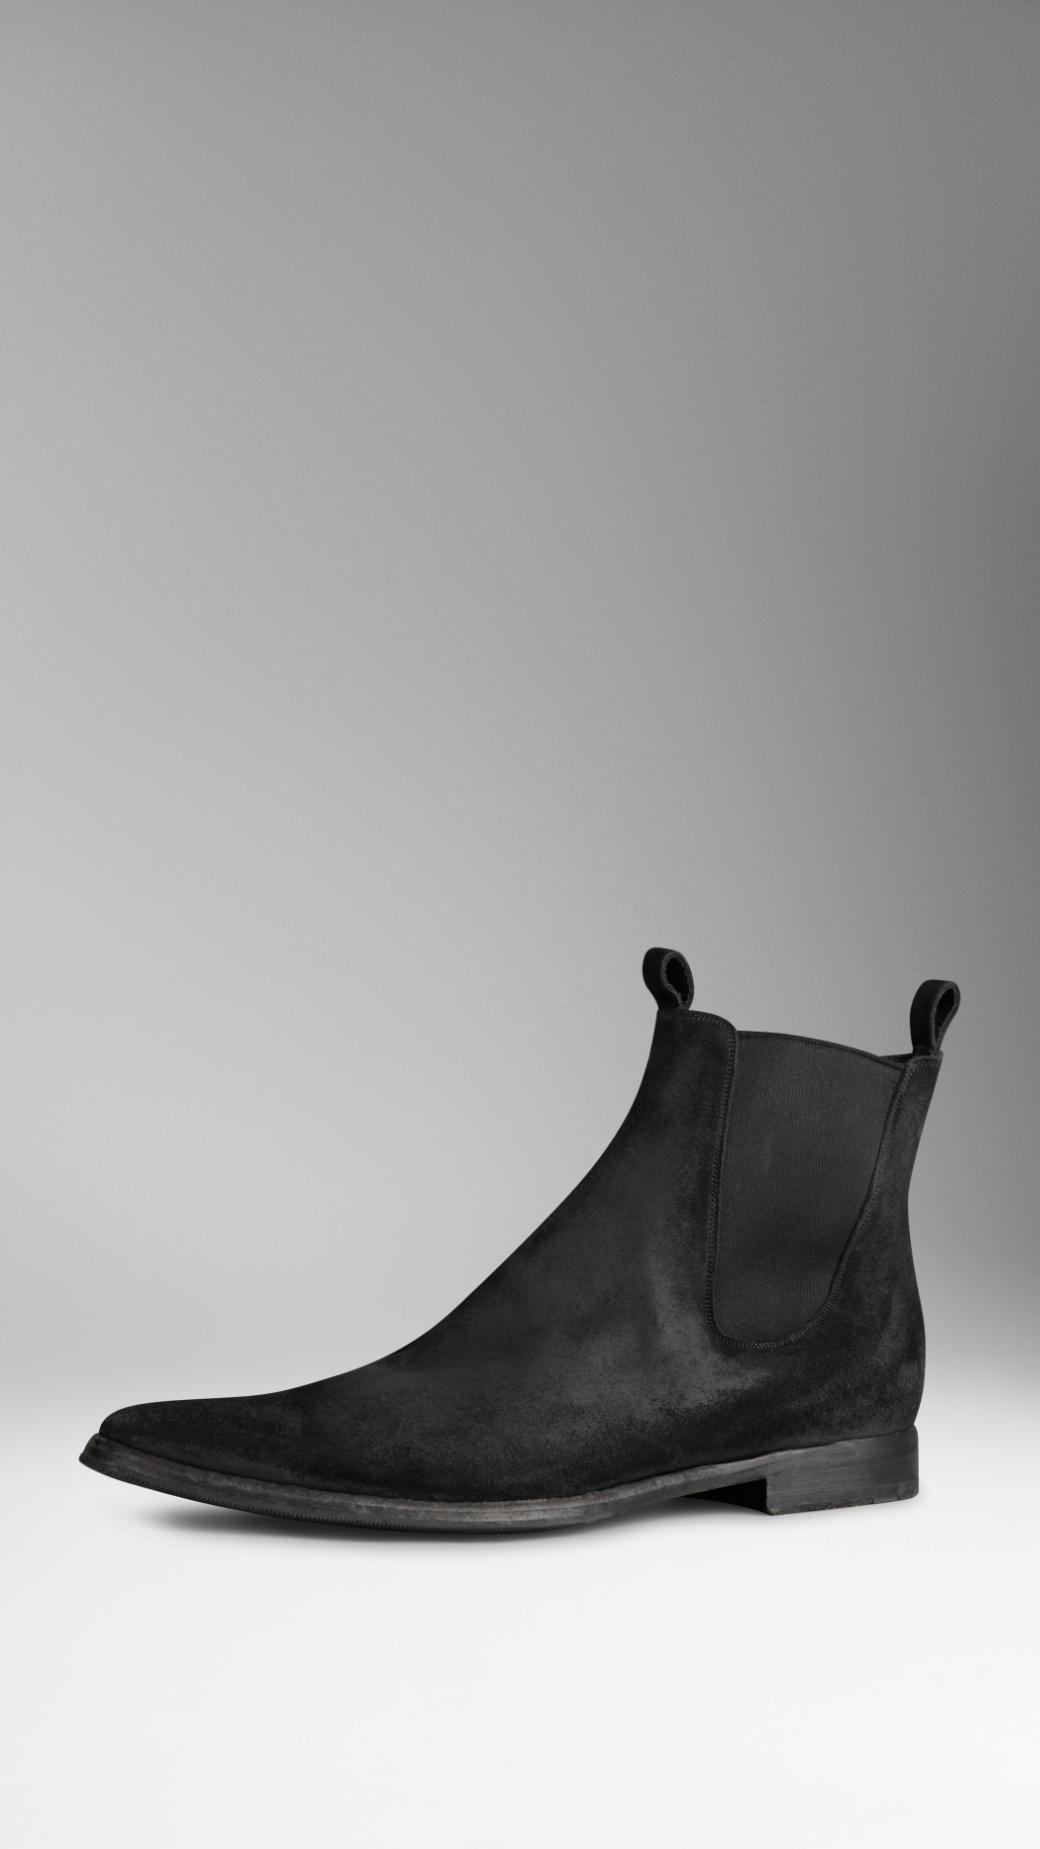 Lyst Burberry Suede Chelsea Boots In Black For Men